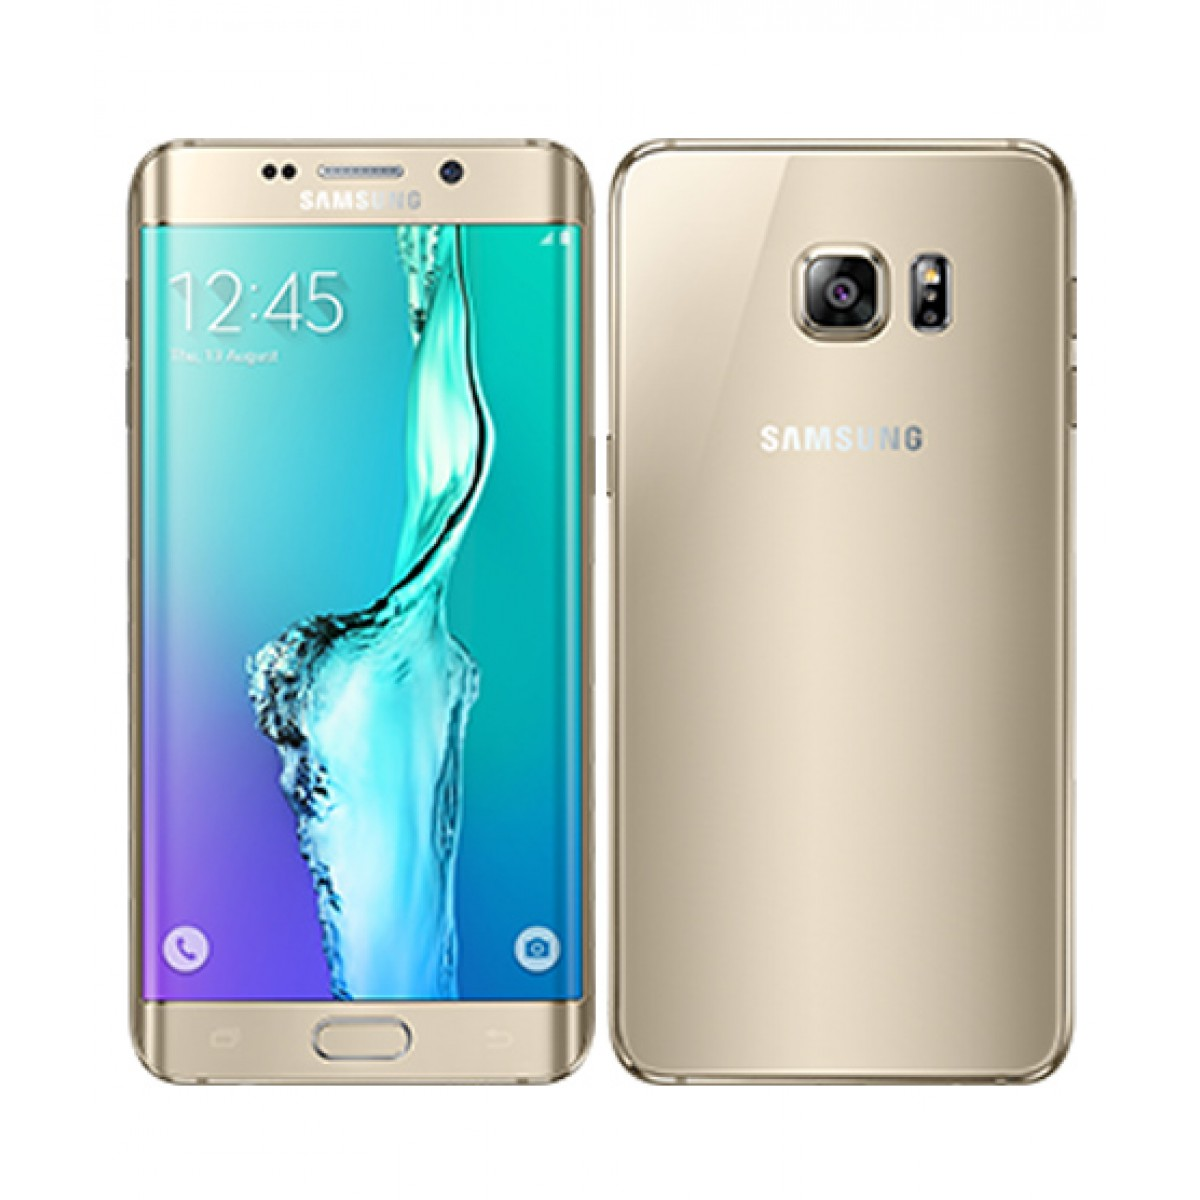 Смартфон Samsung Galaxy S6 Edge 32Gb Gold KST